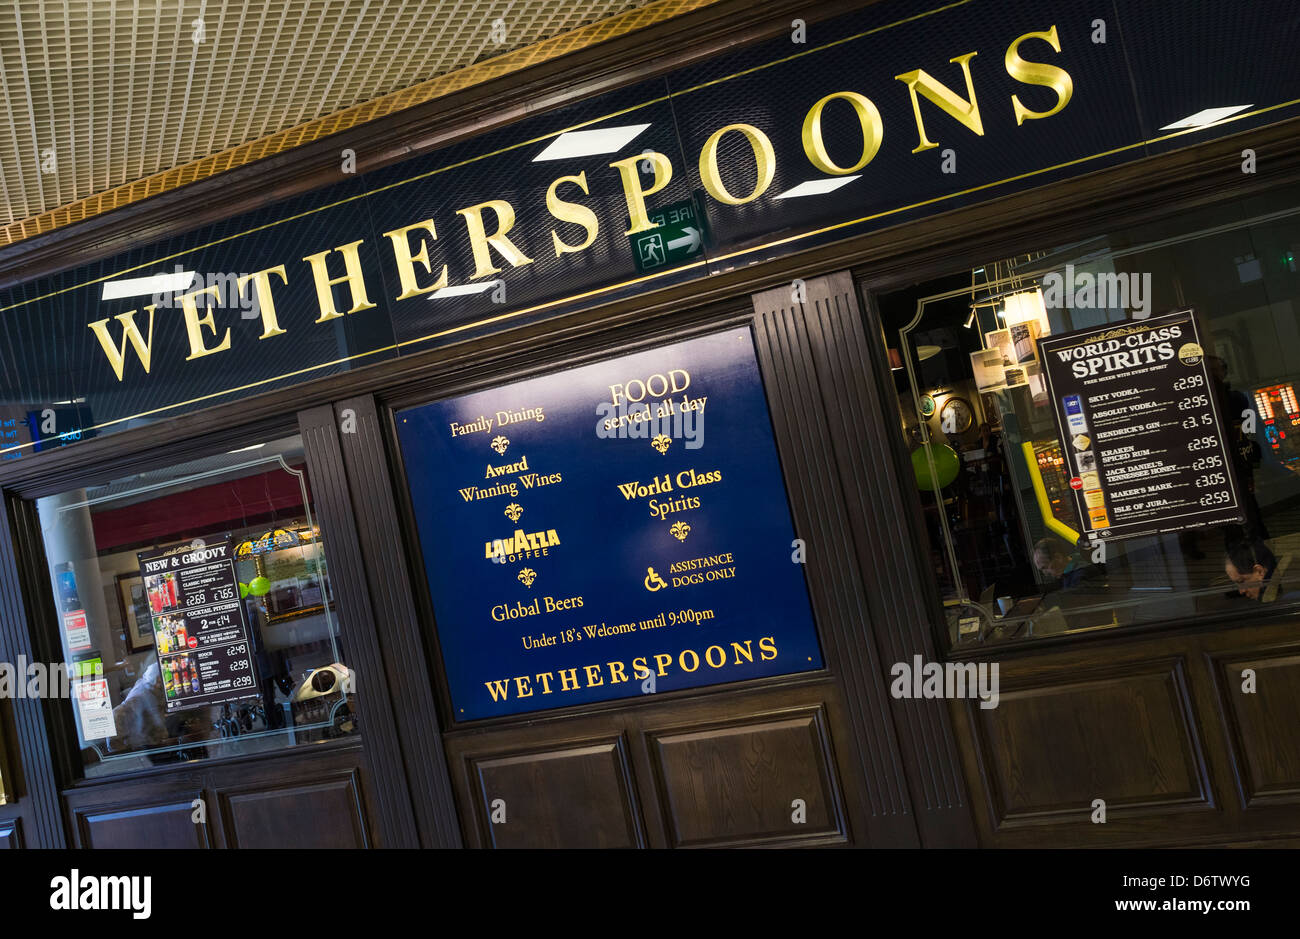 Wetherspoons pub at the Metrocentre. - Stock Image